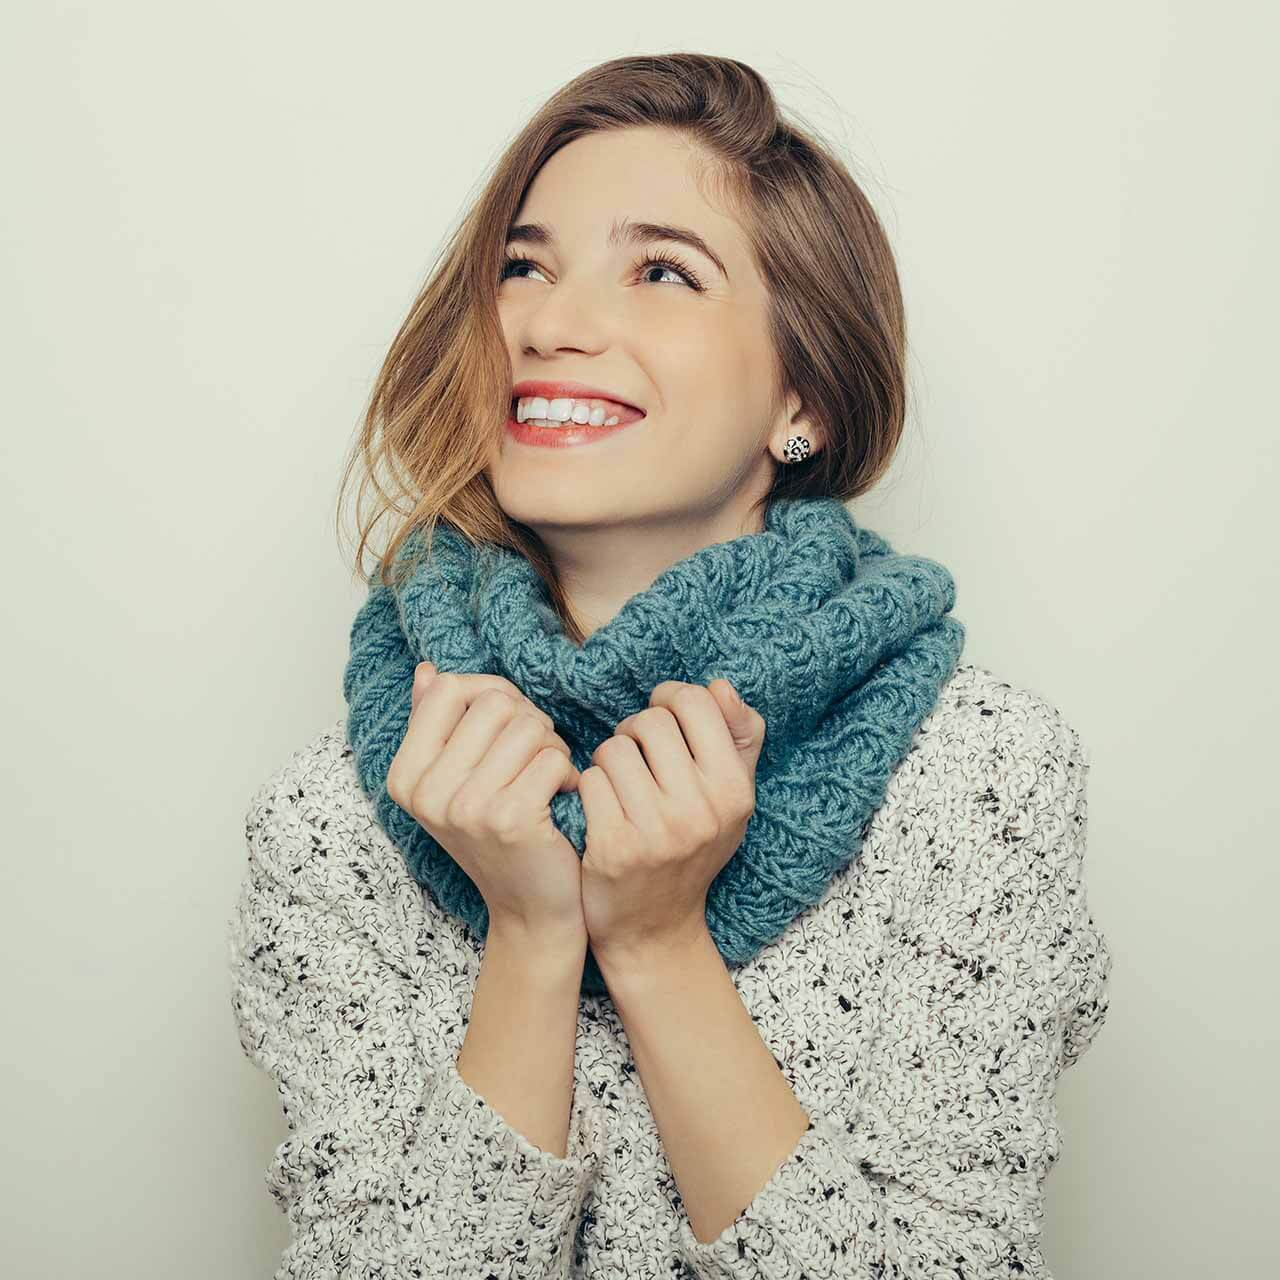 portrait-of-an-attractive-young-girl-in-winter-1